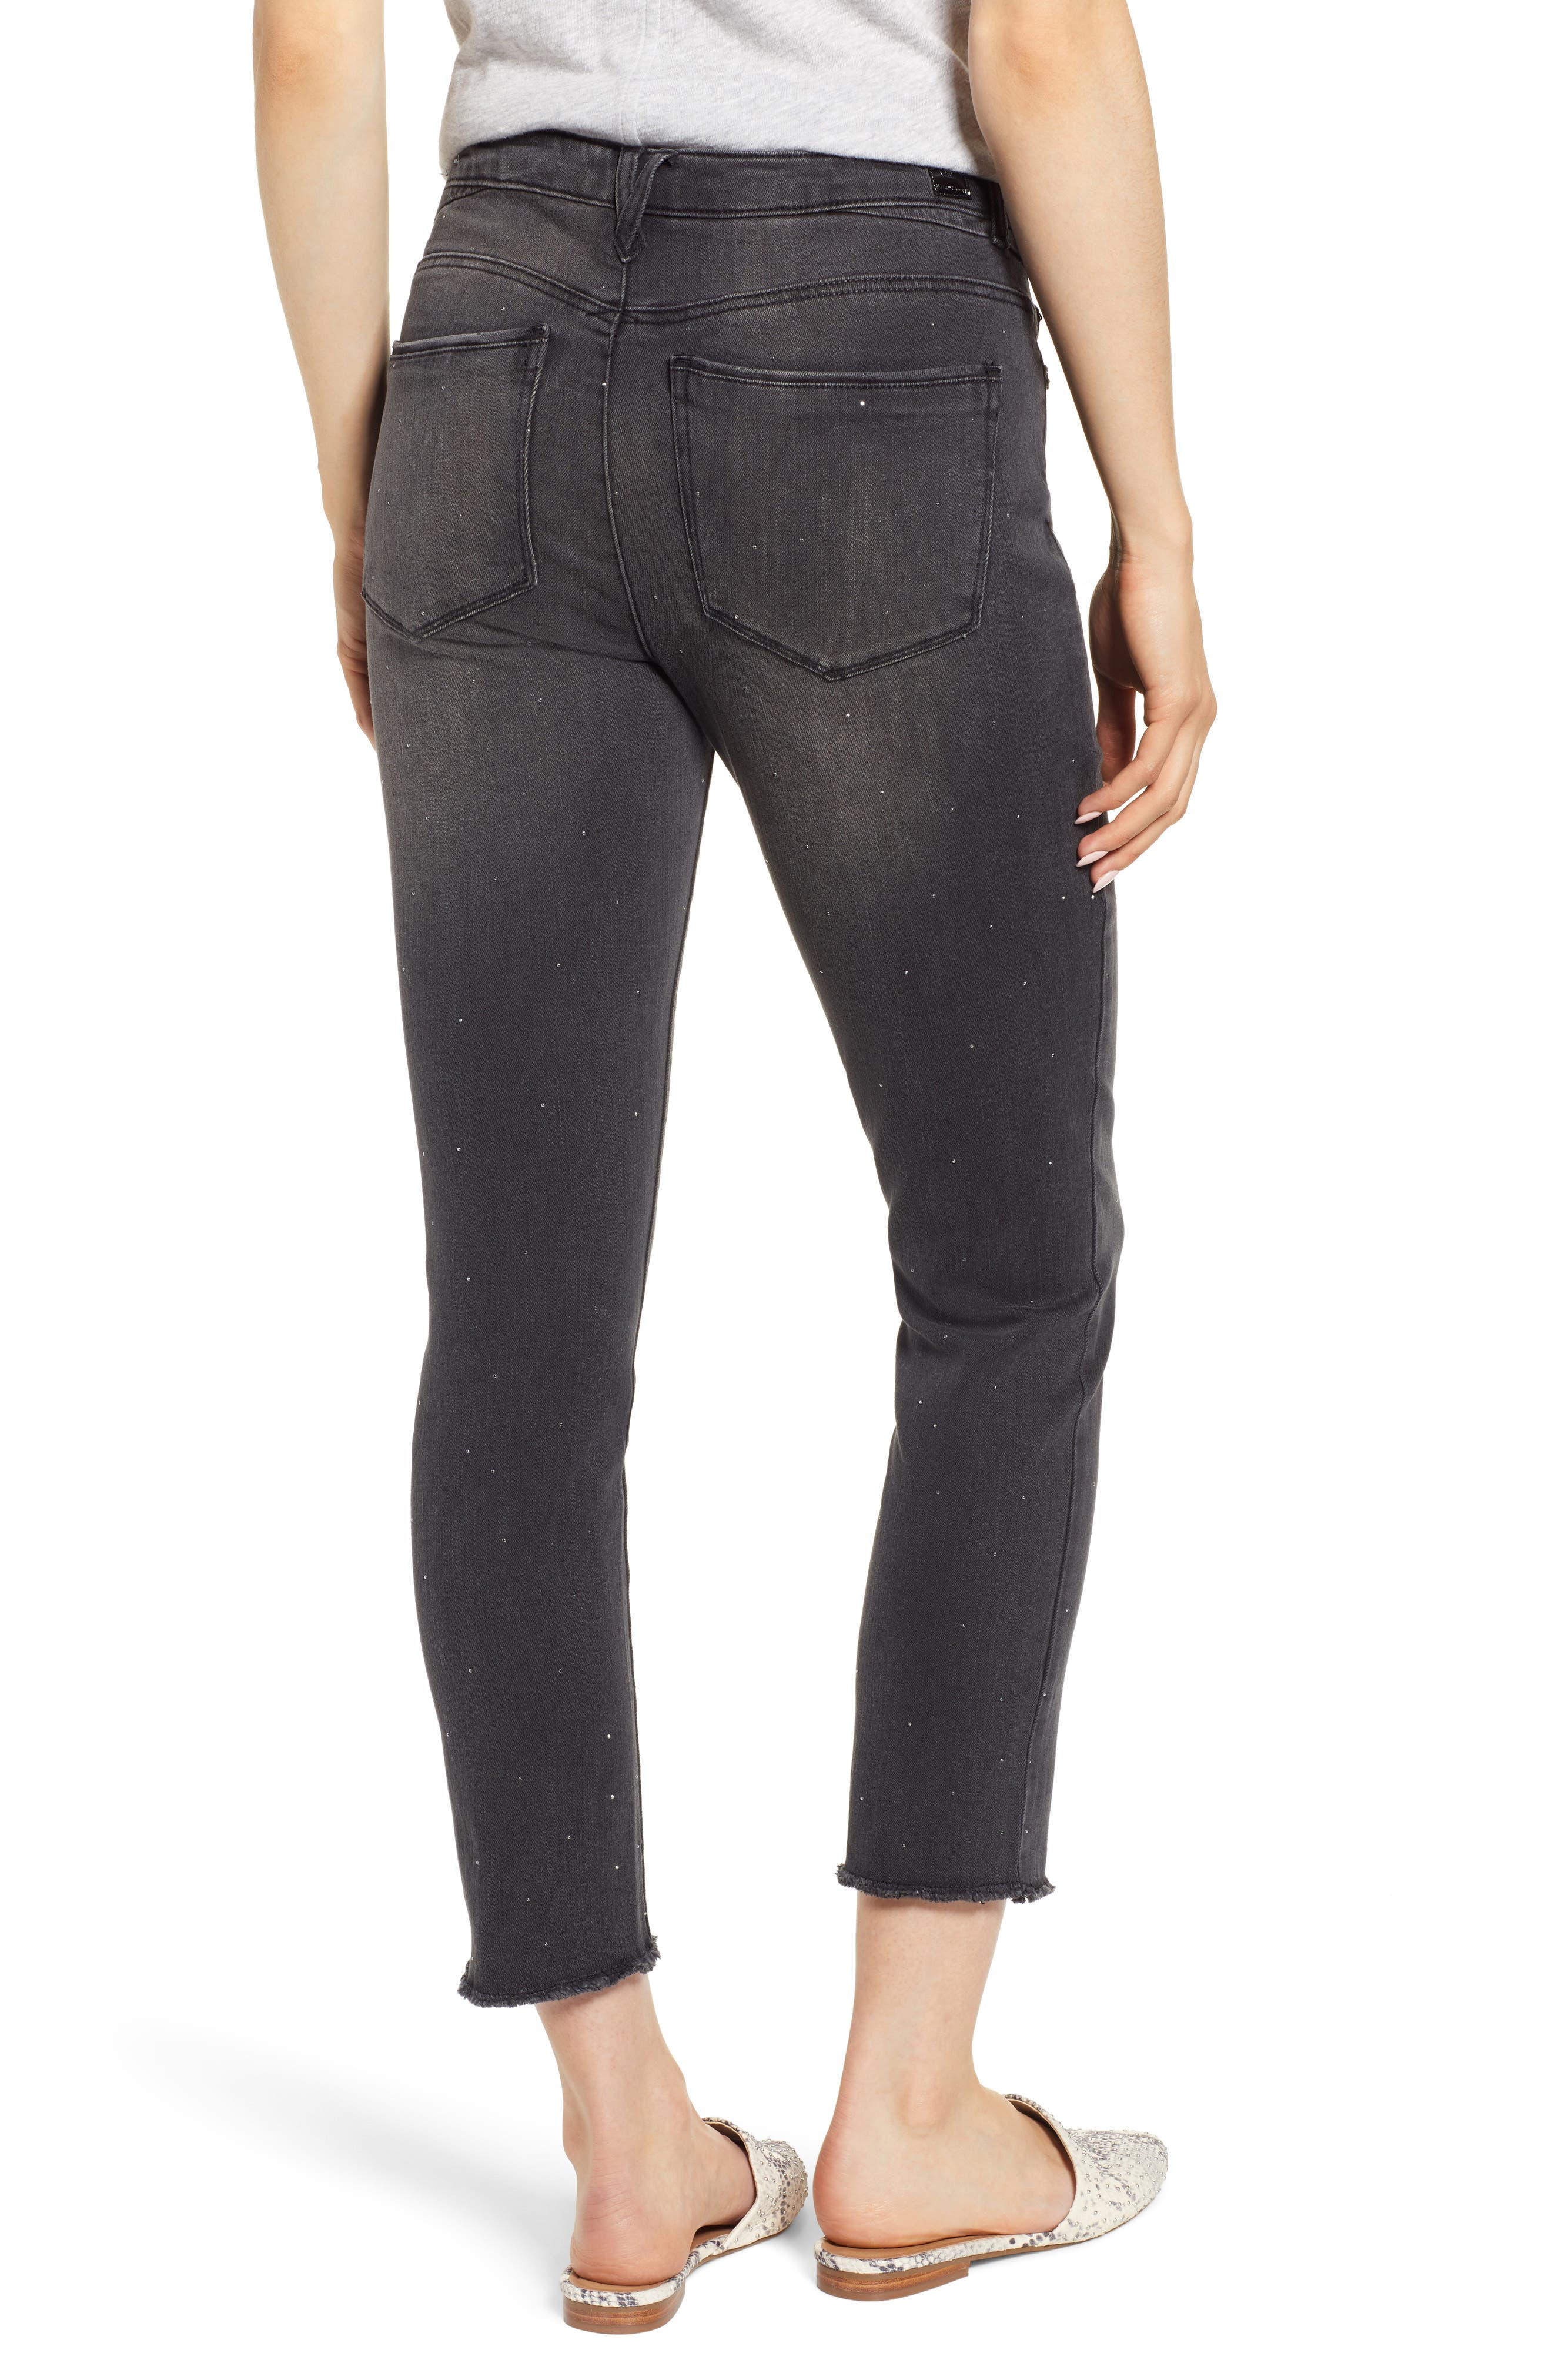 Ab-Solution Embellished Ankle Jeans,                             Alternate thumbnail 2, color,                             001